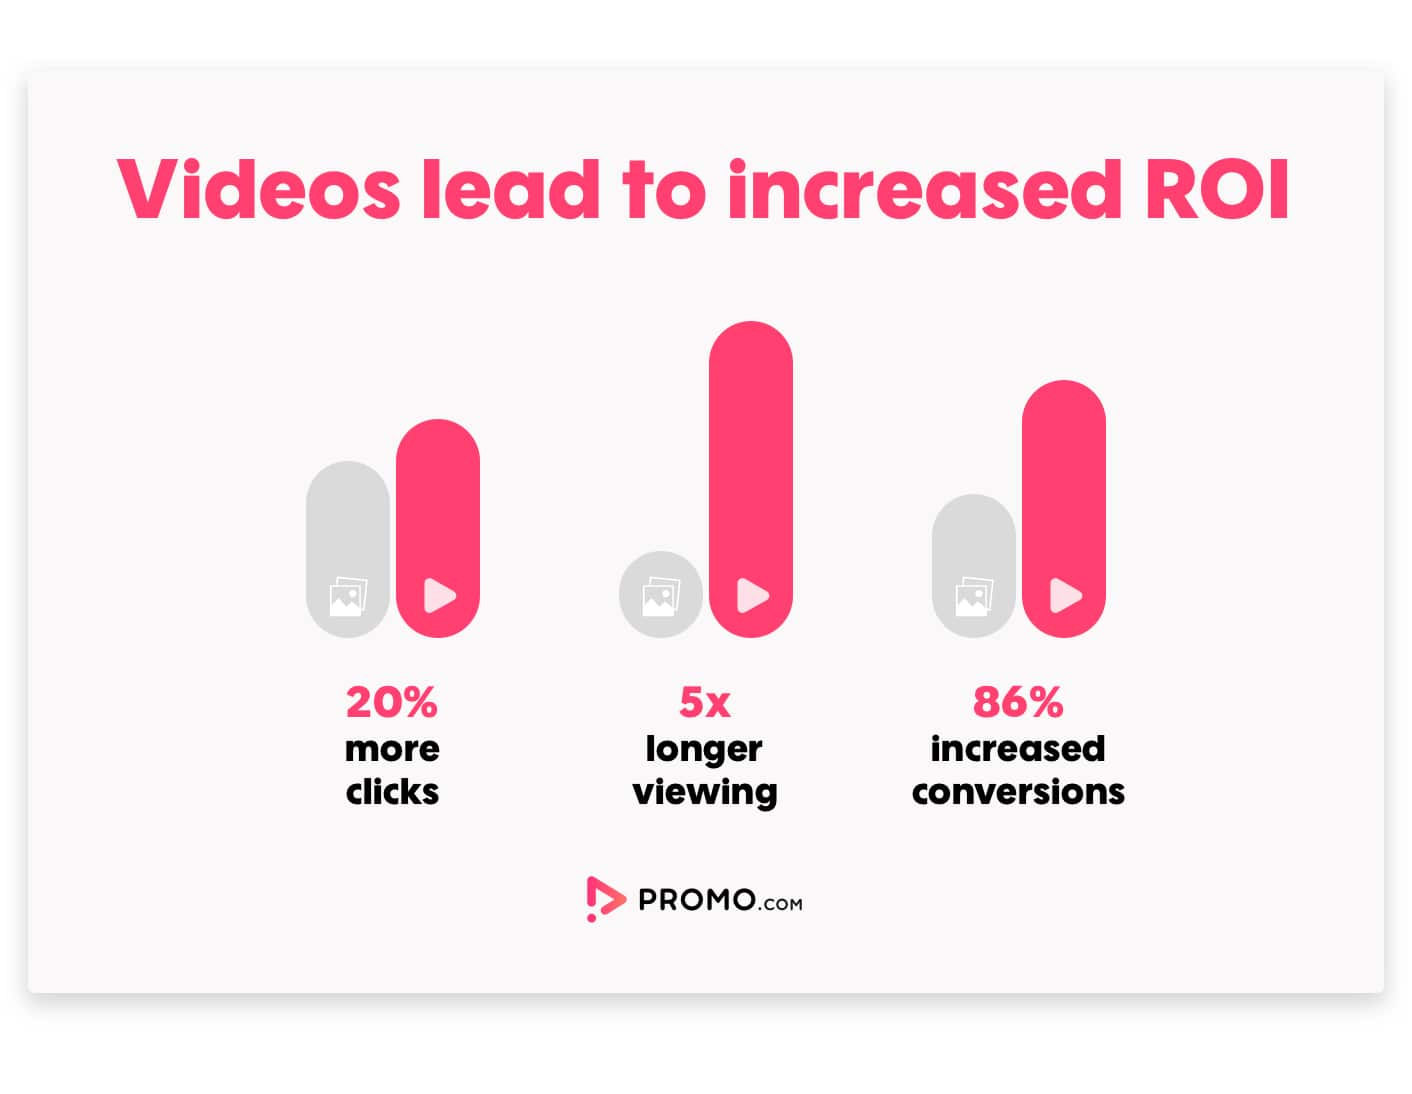 videos lead to increased ROI